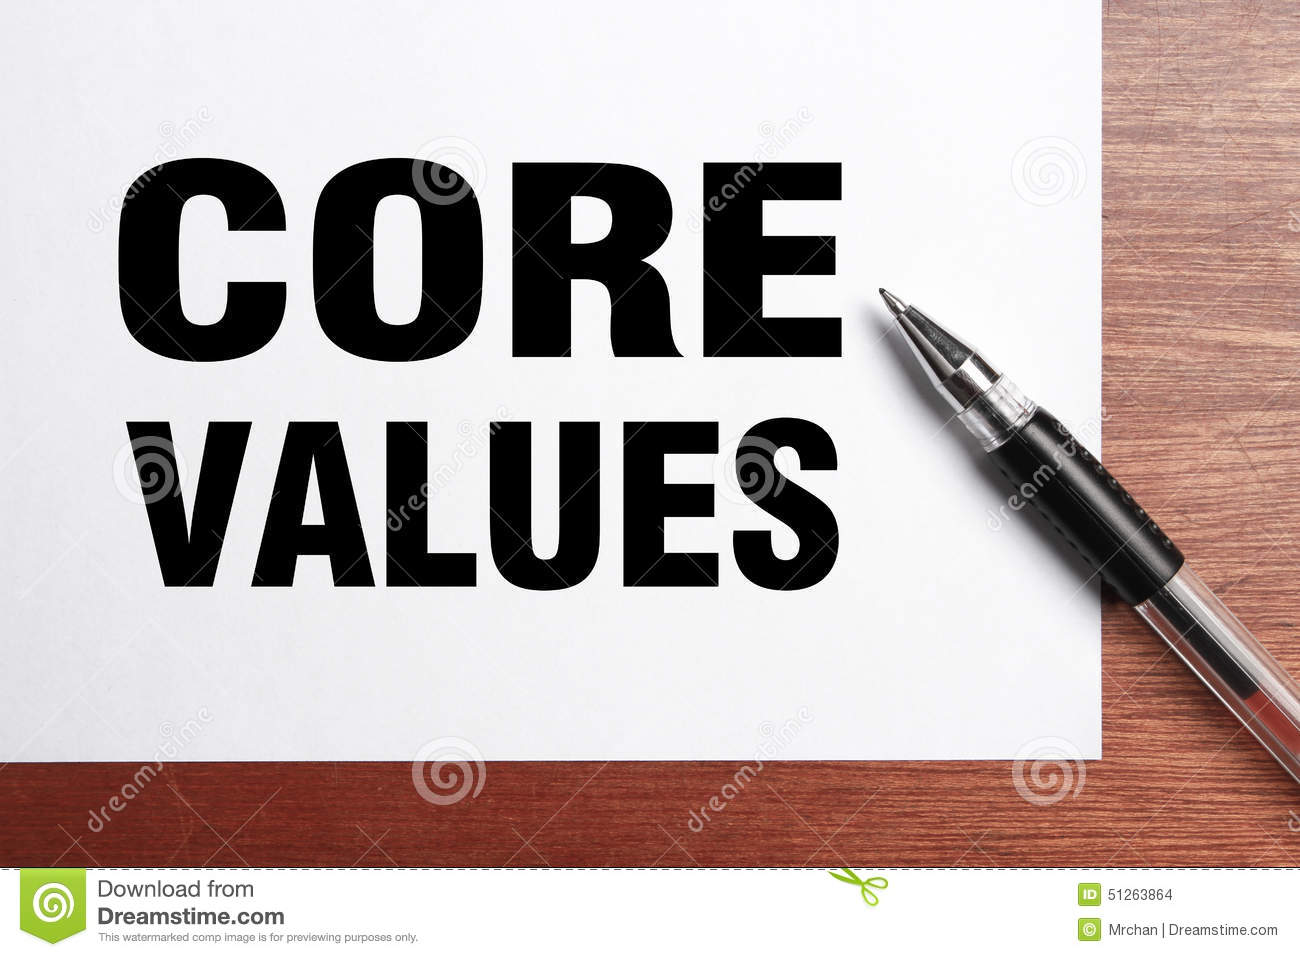 What are Canadian Values?